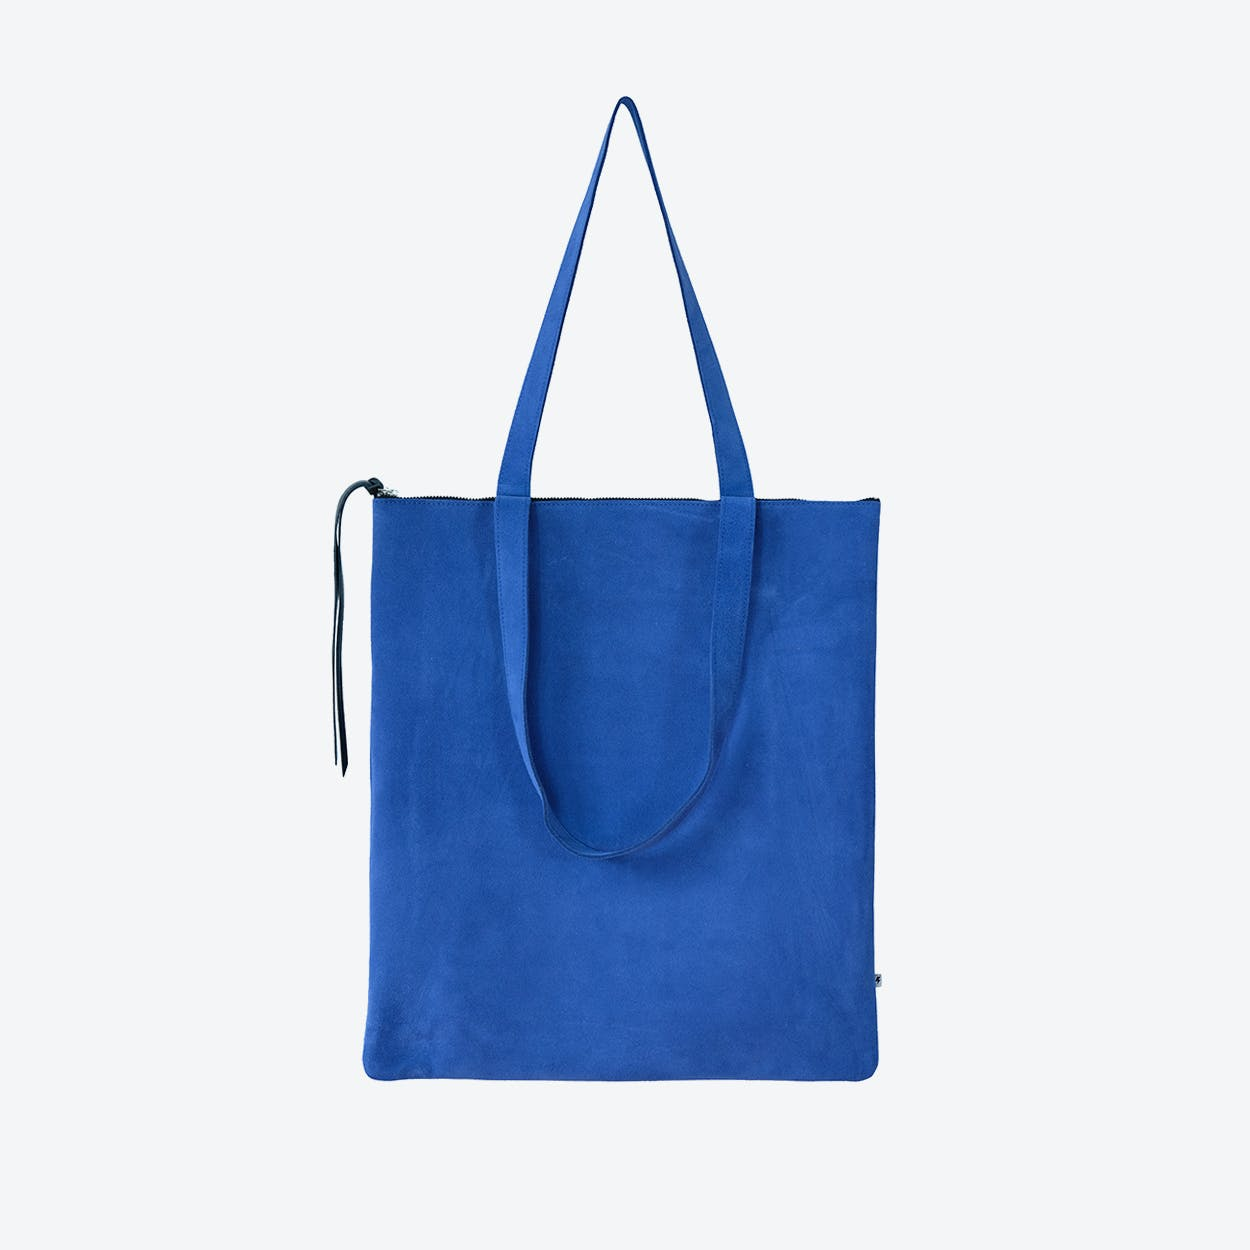 FIRU Shoulder Bag in Blue